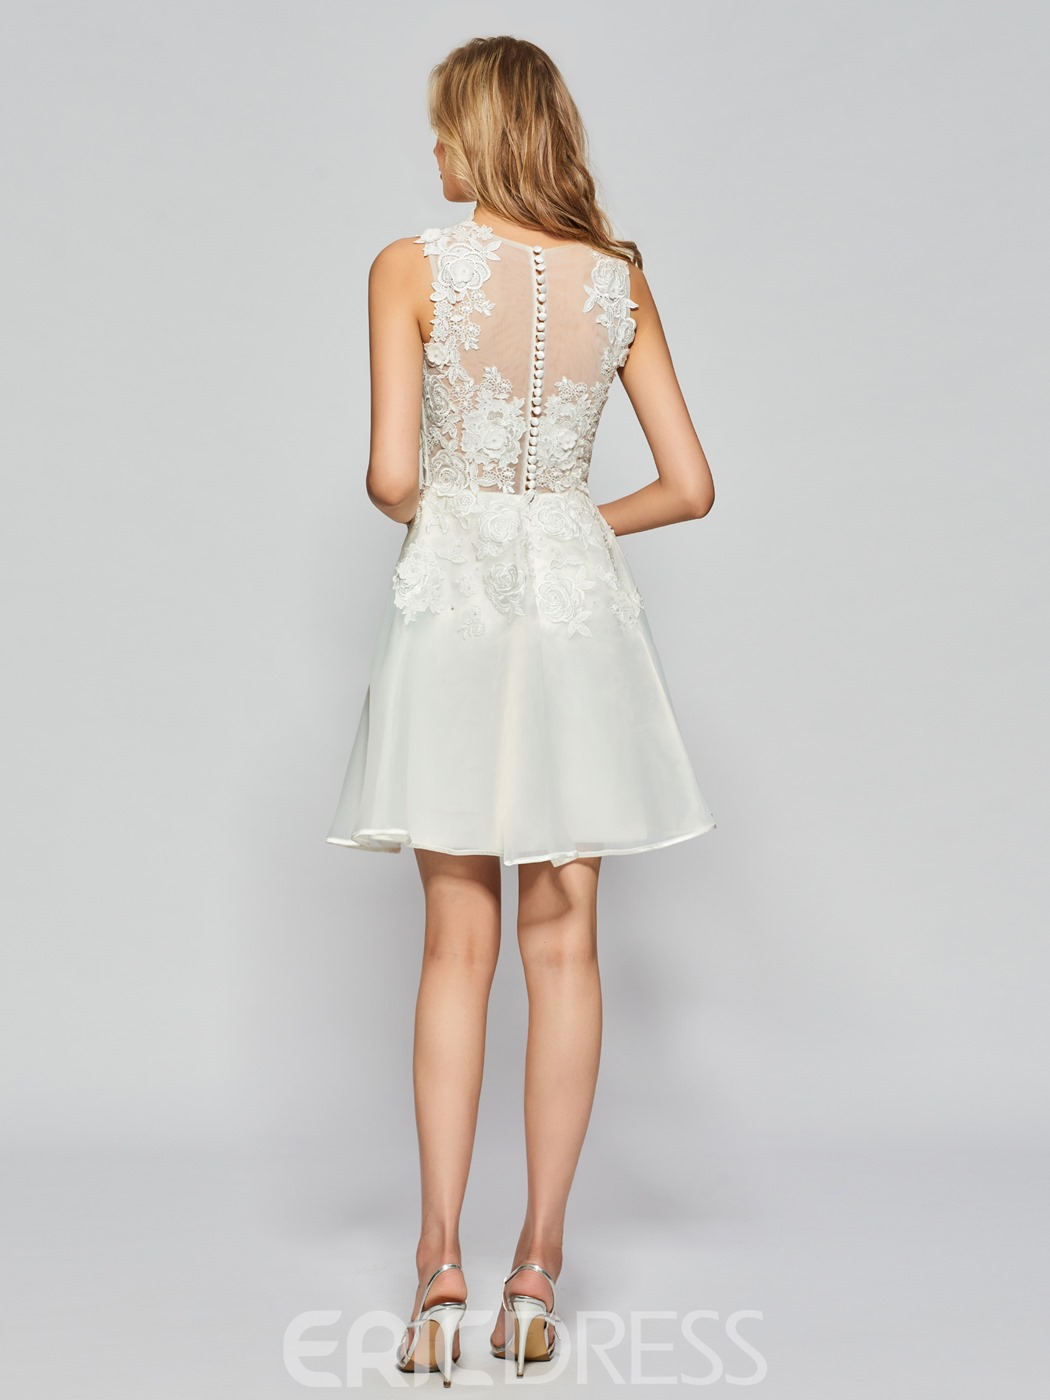 Ericdress A Line Applique Lace Short Homecoming Dress